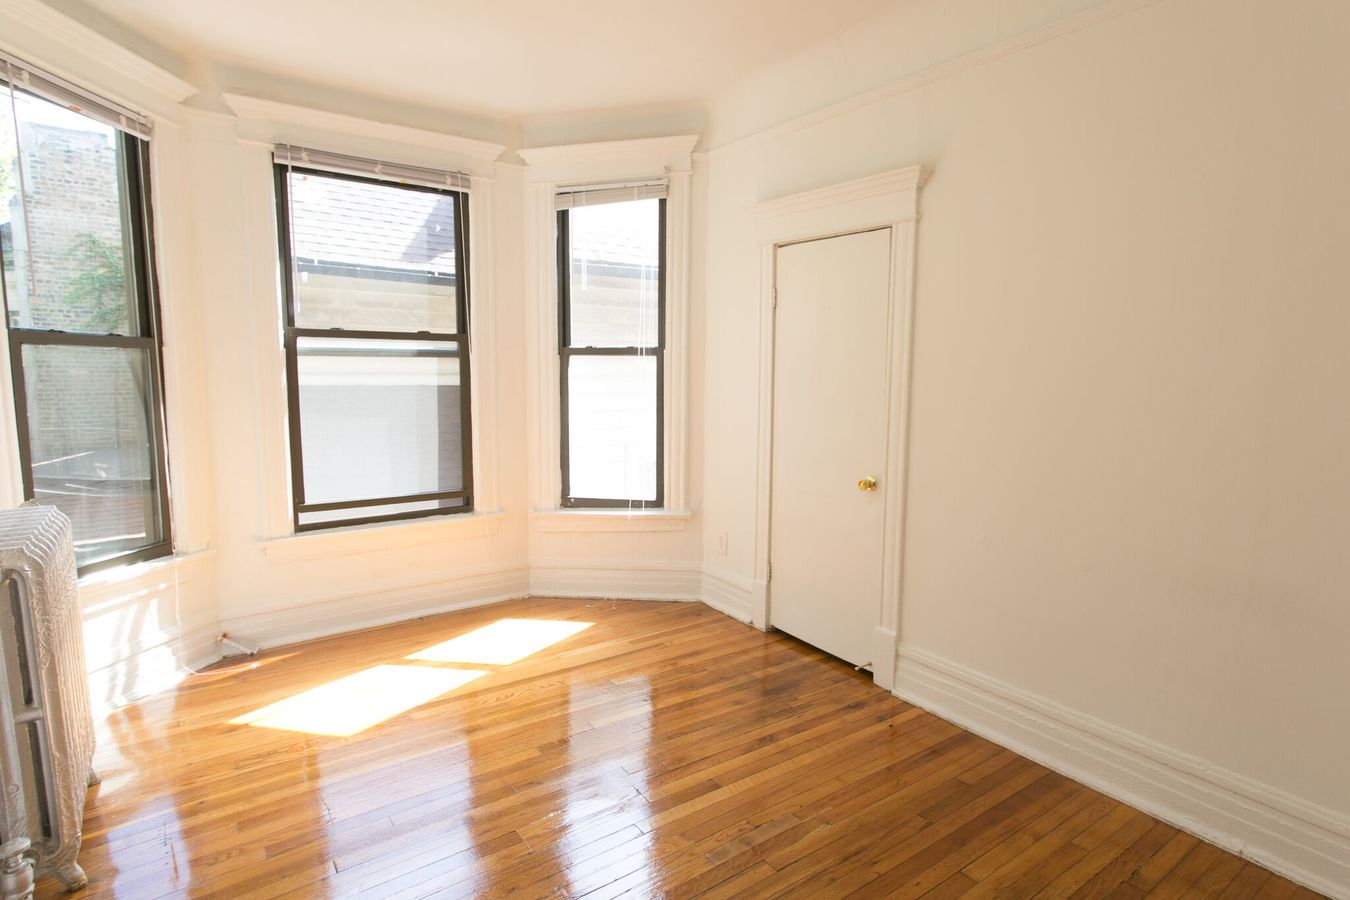 4 Bedrooms 1 Bathroom Apartment for rent at 5401-5403 S. Woodlawn Avenue in Chicago, IL